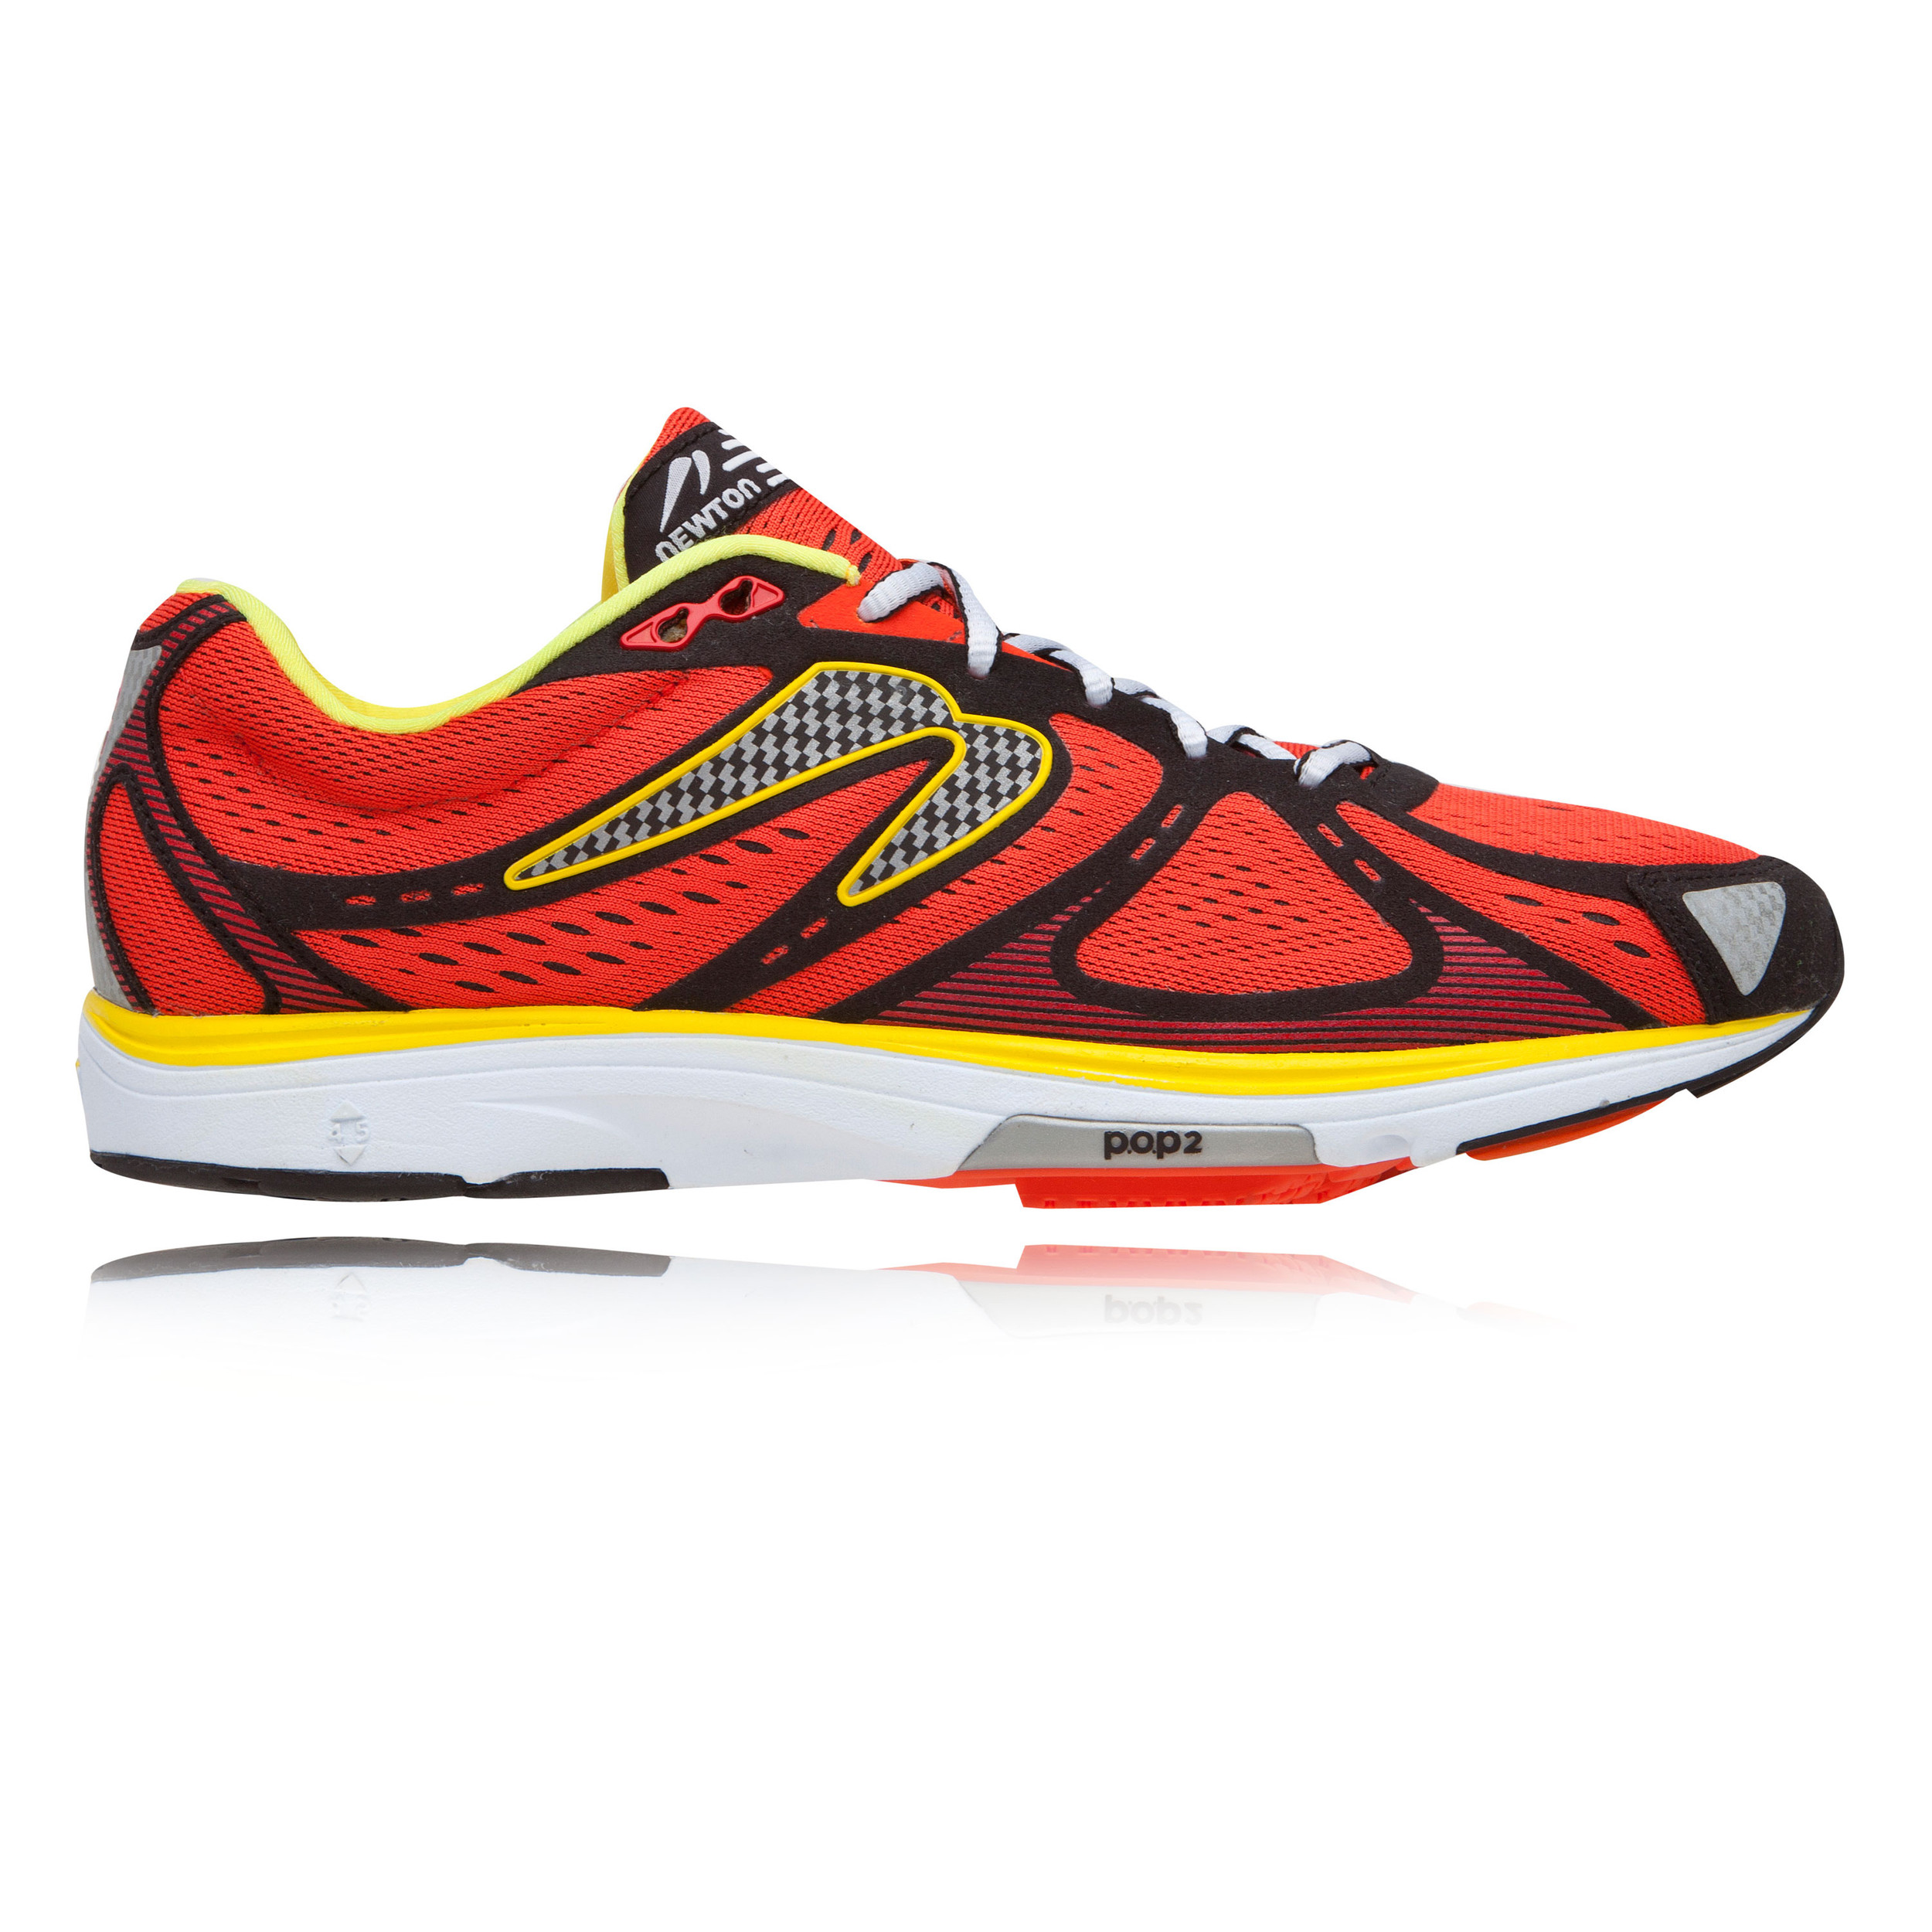 Cushioned Asics Running Shoes Con Me